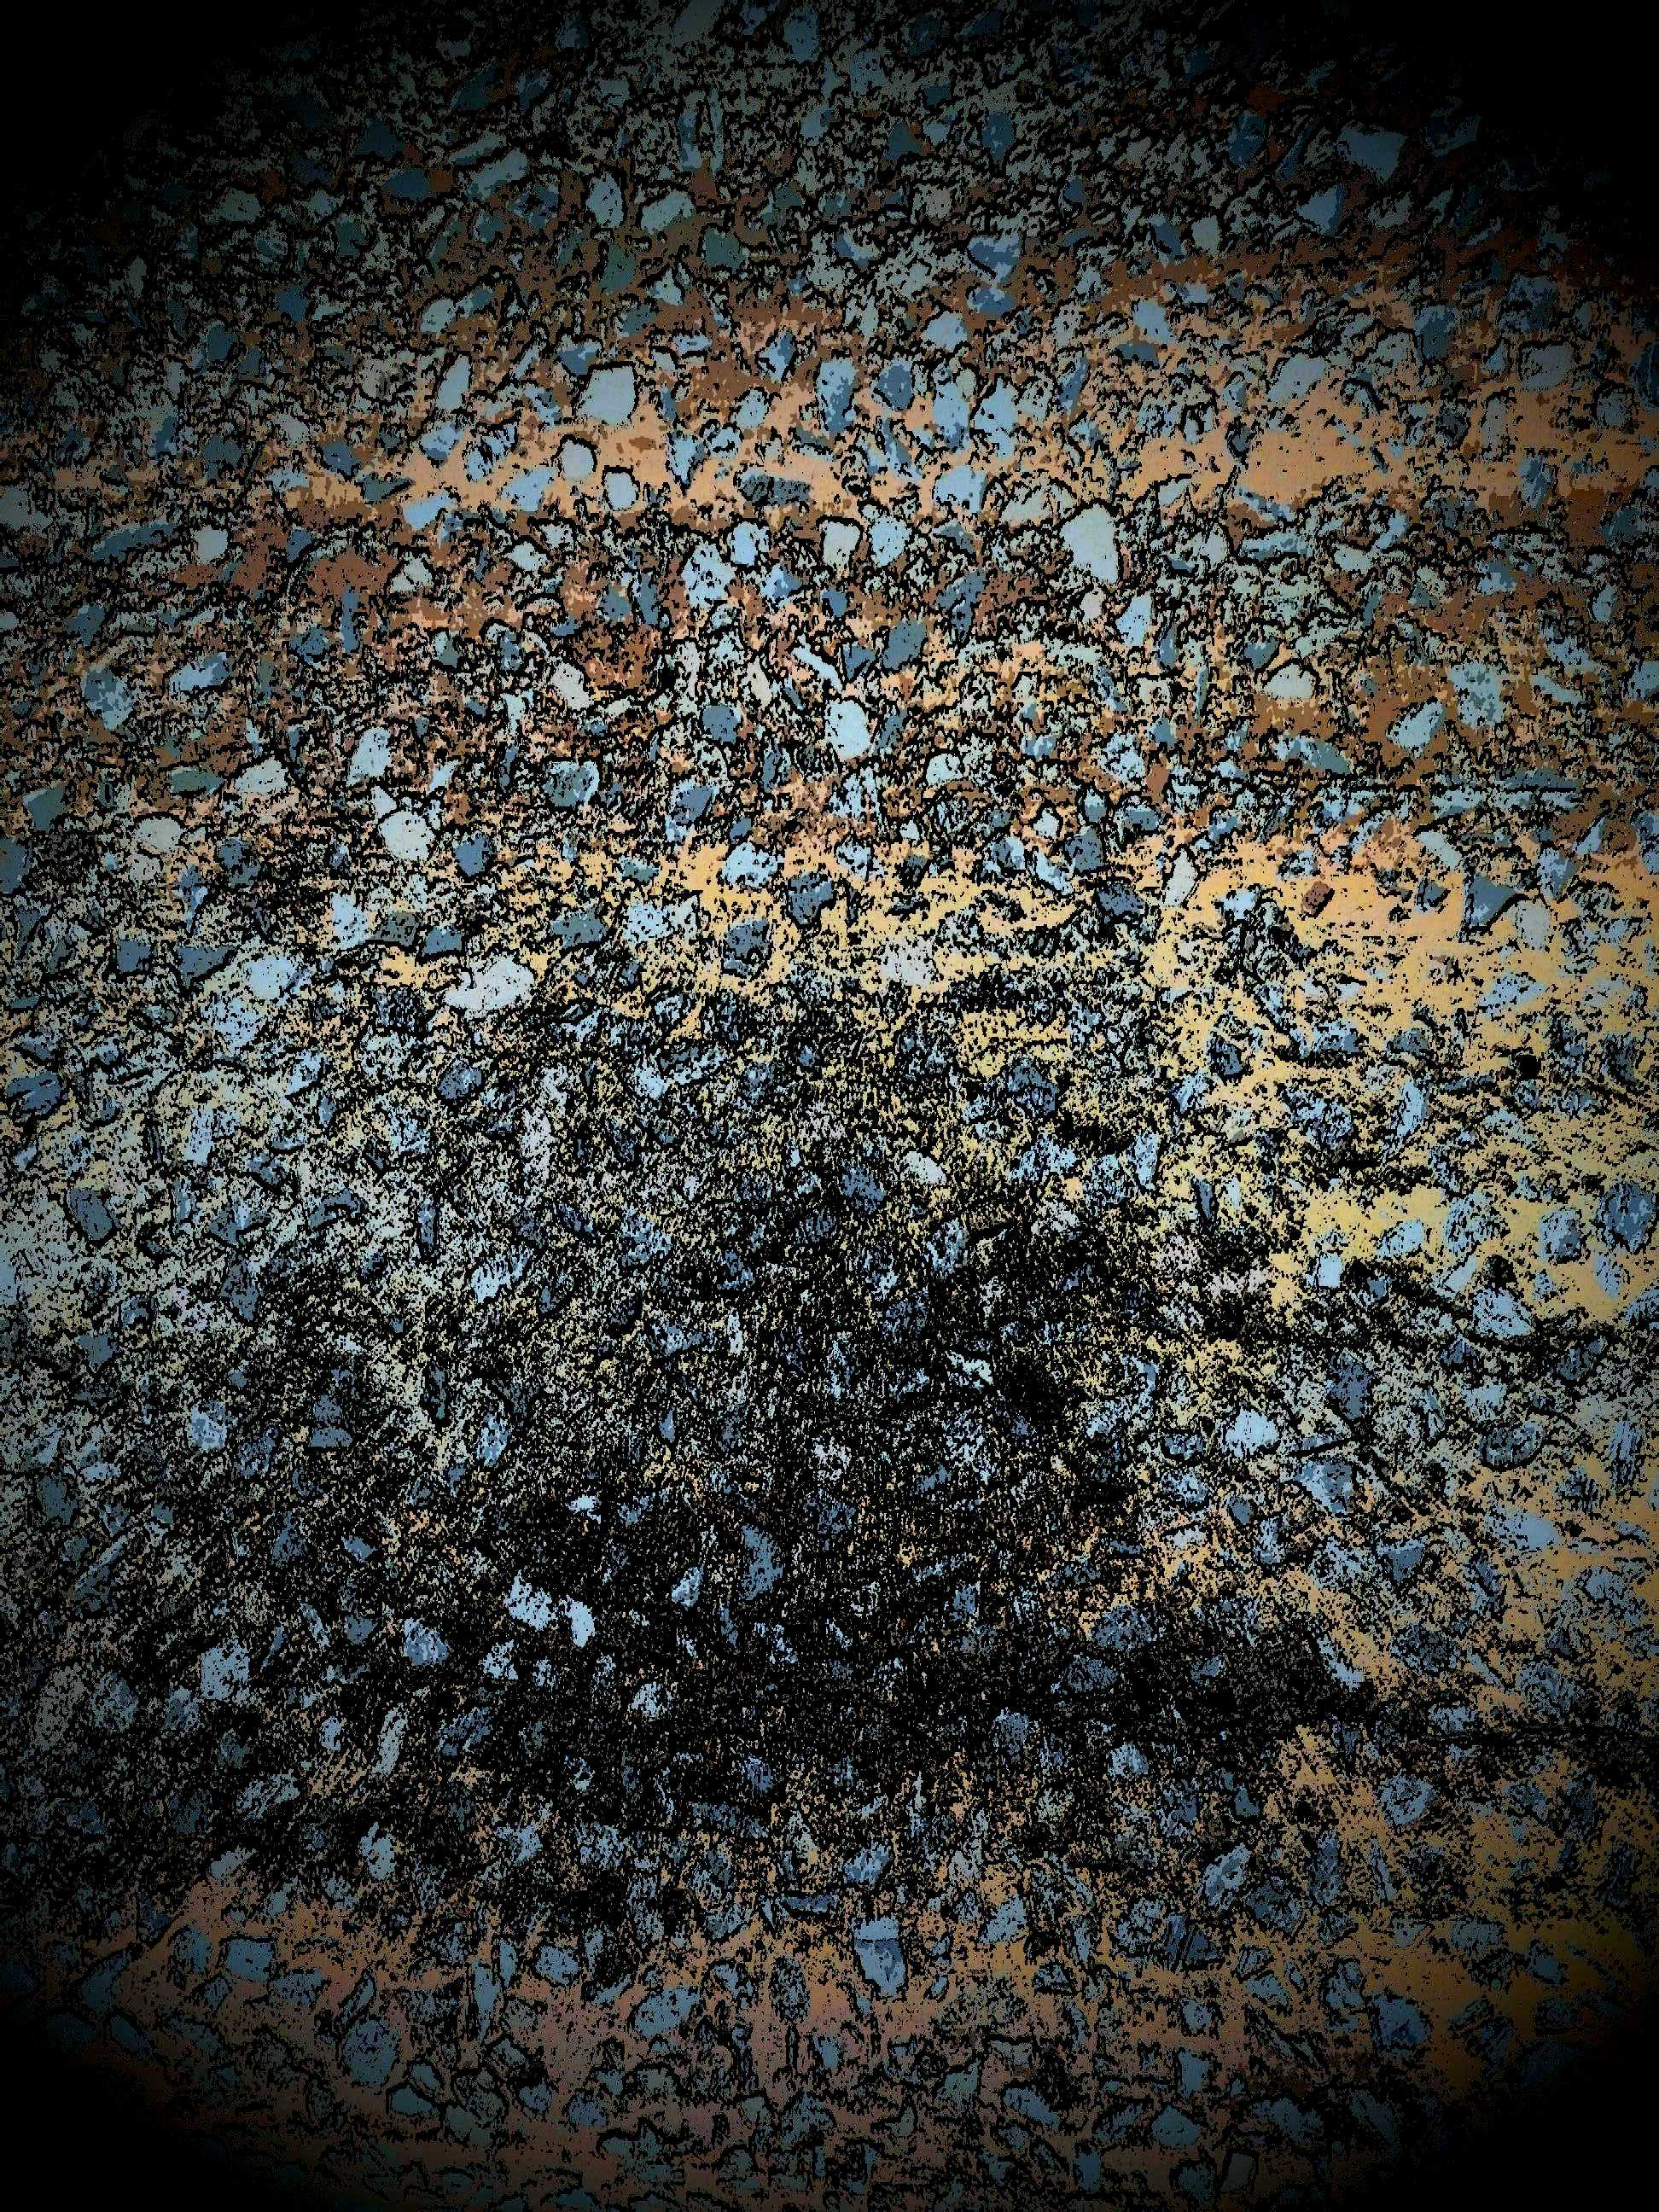 Dark Speckled Grungy Background, Abandoned, Spotted, Material, Messy, HQ Photo